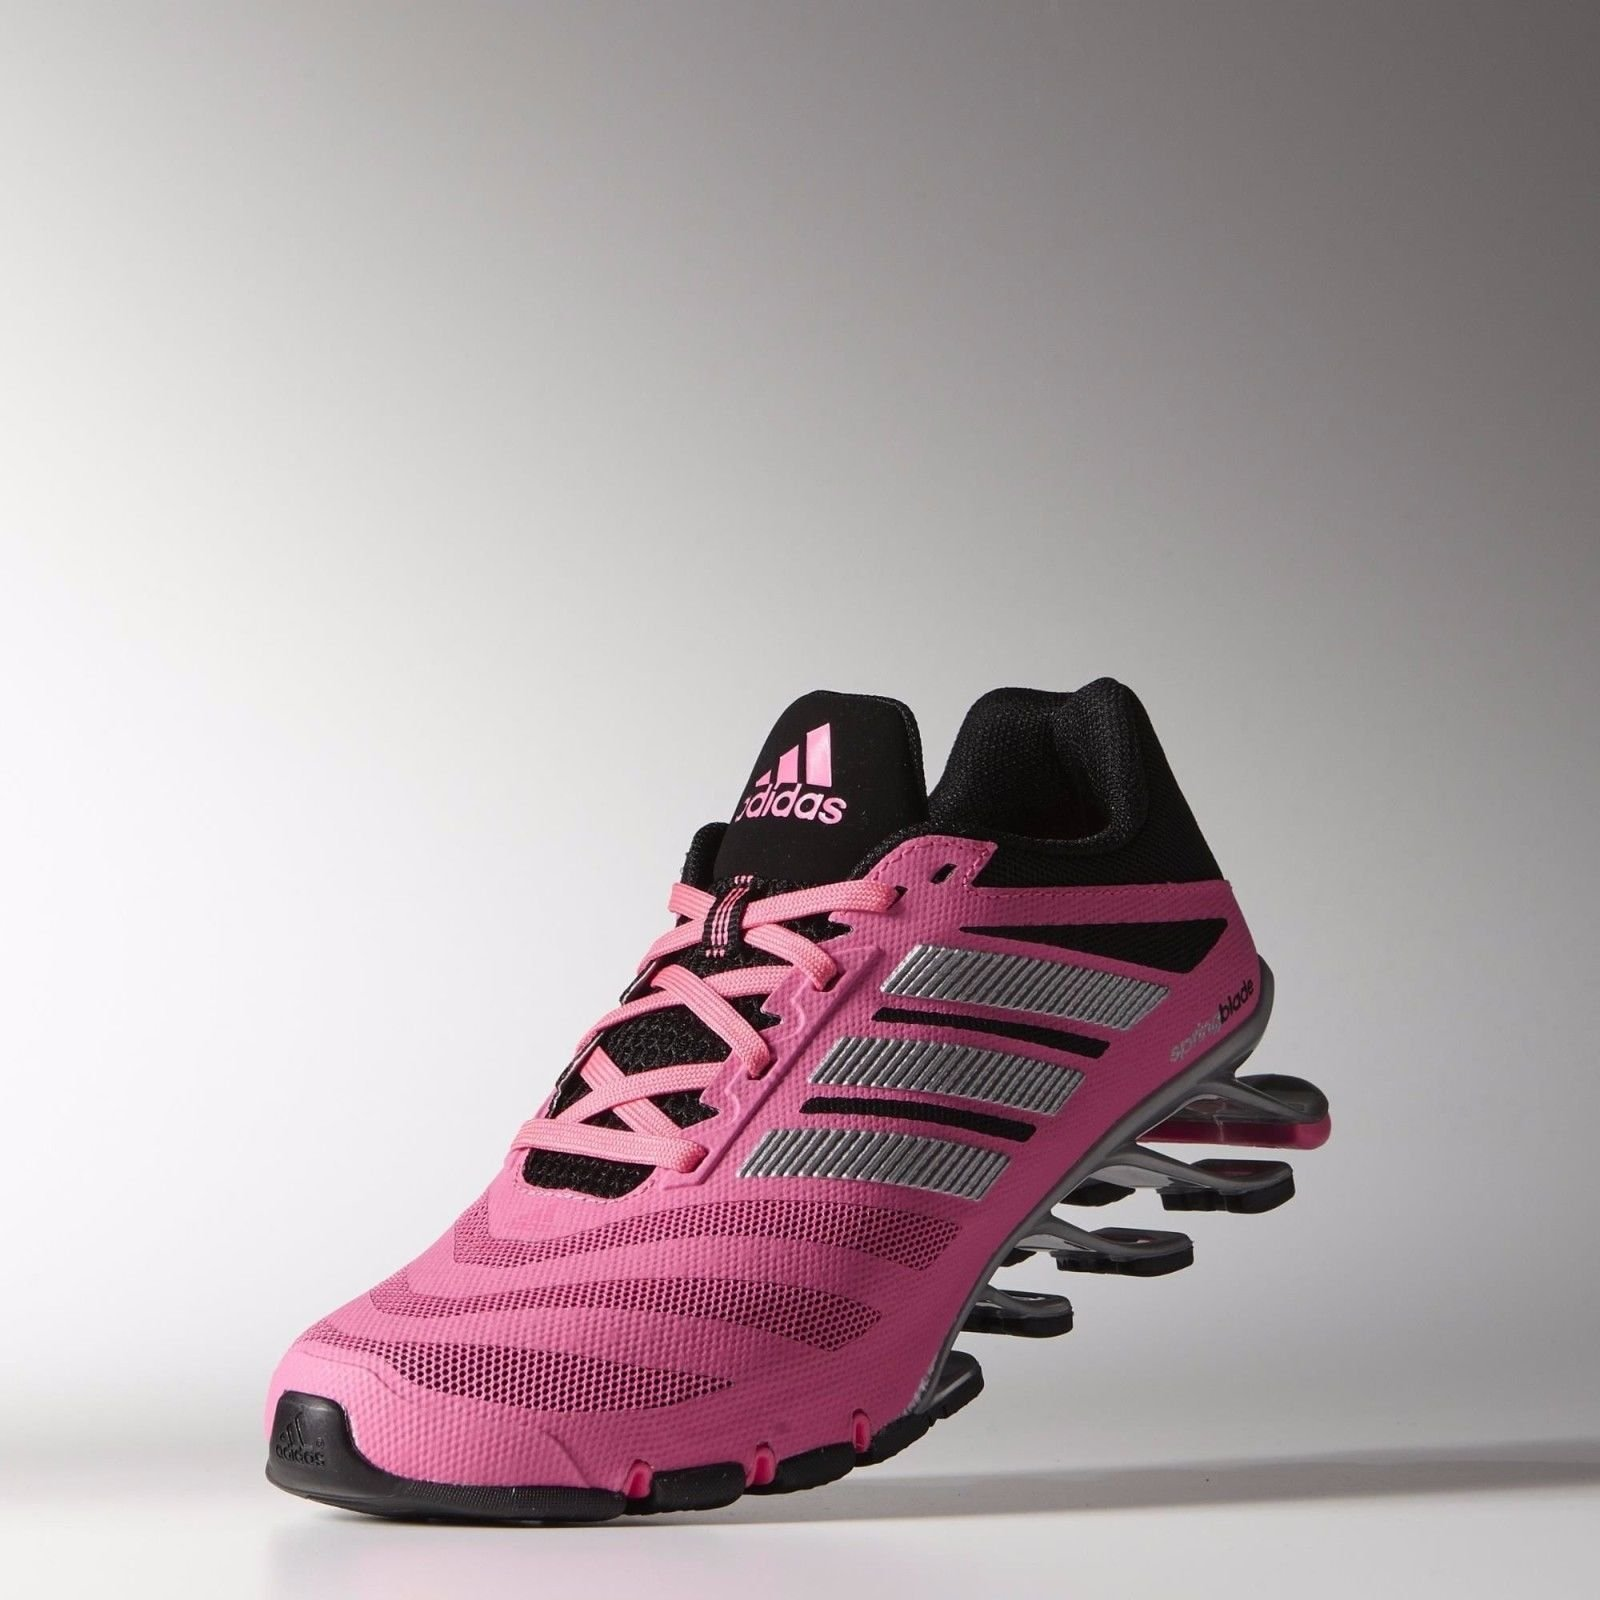 promo code d1cb4 8c808 Galleon - Adidas Springblade Ignite AdiWear M19797 Pink Silver Black  Women s Running Shoes (size 7.5)